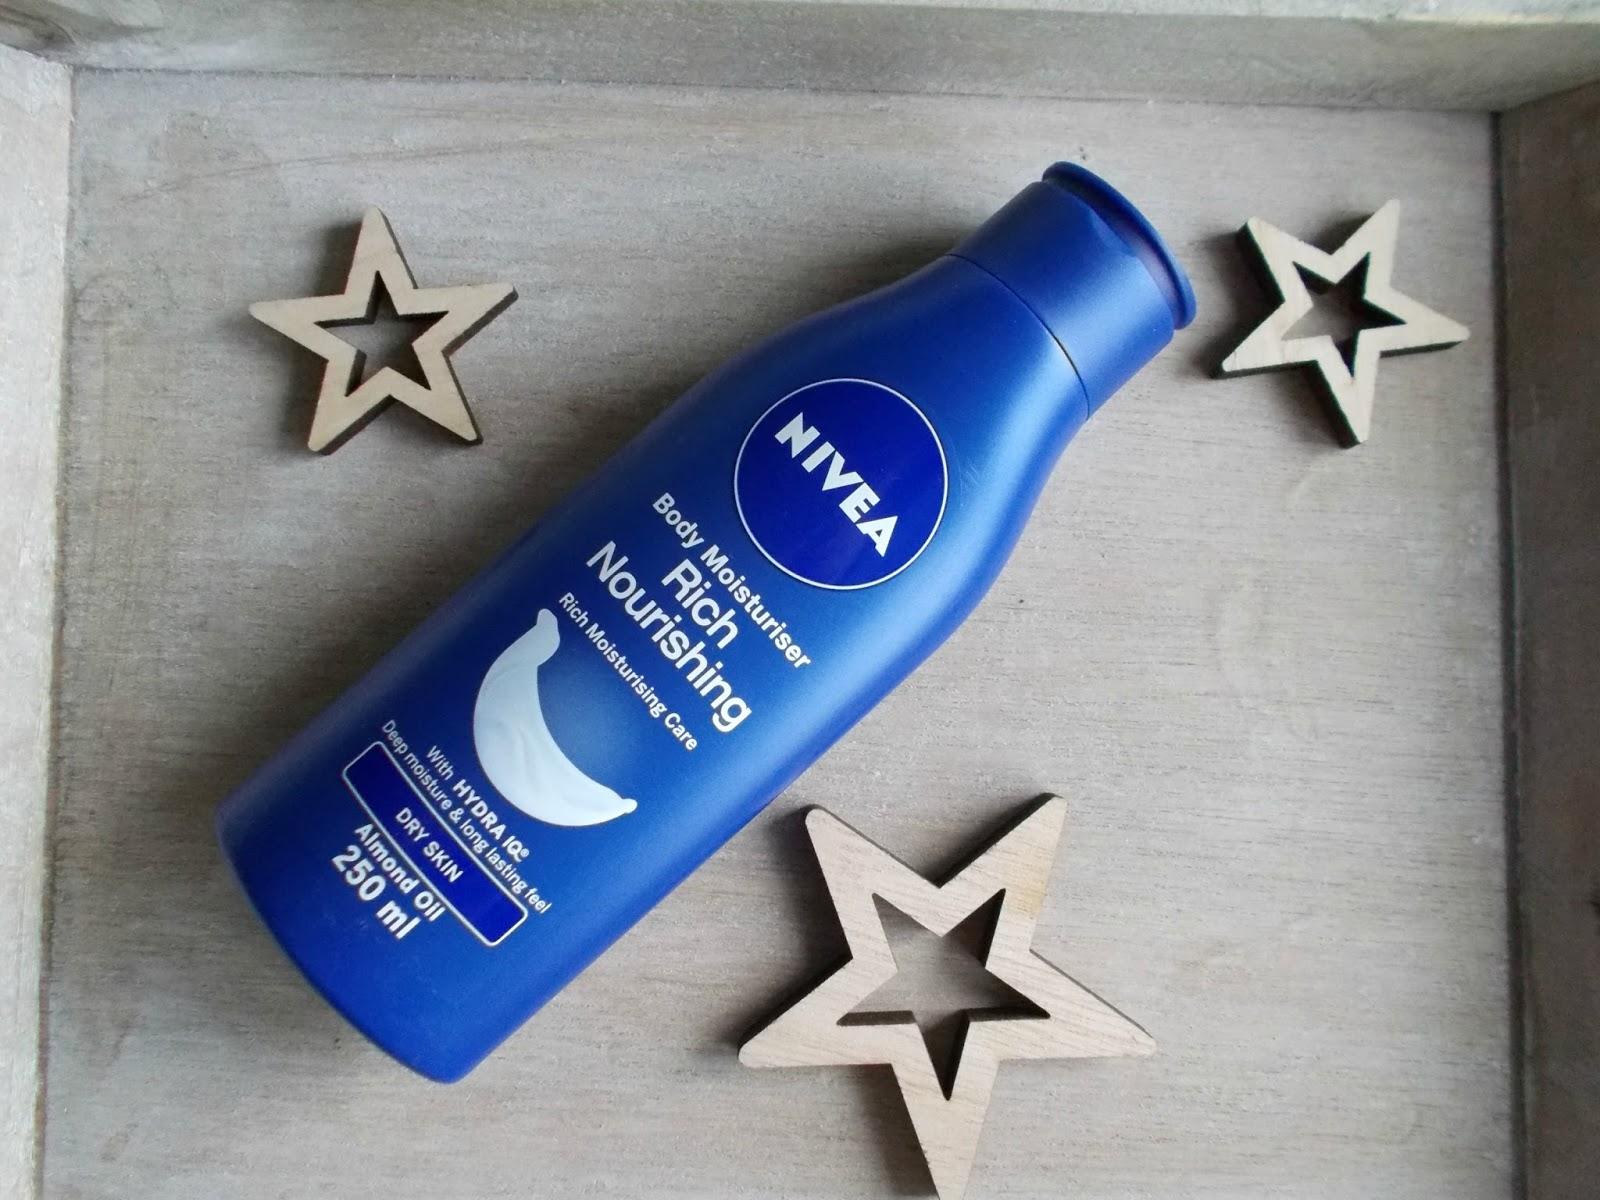 NIVEA rich nourishing body moisturiser review